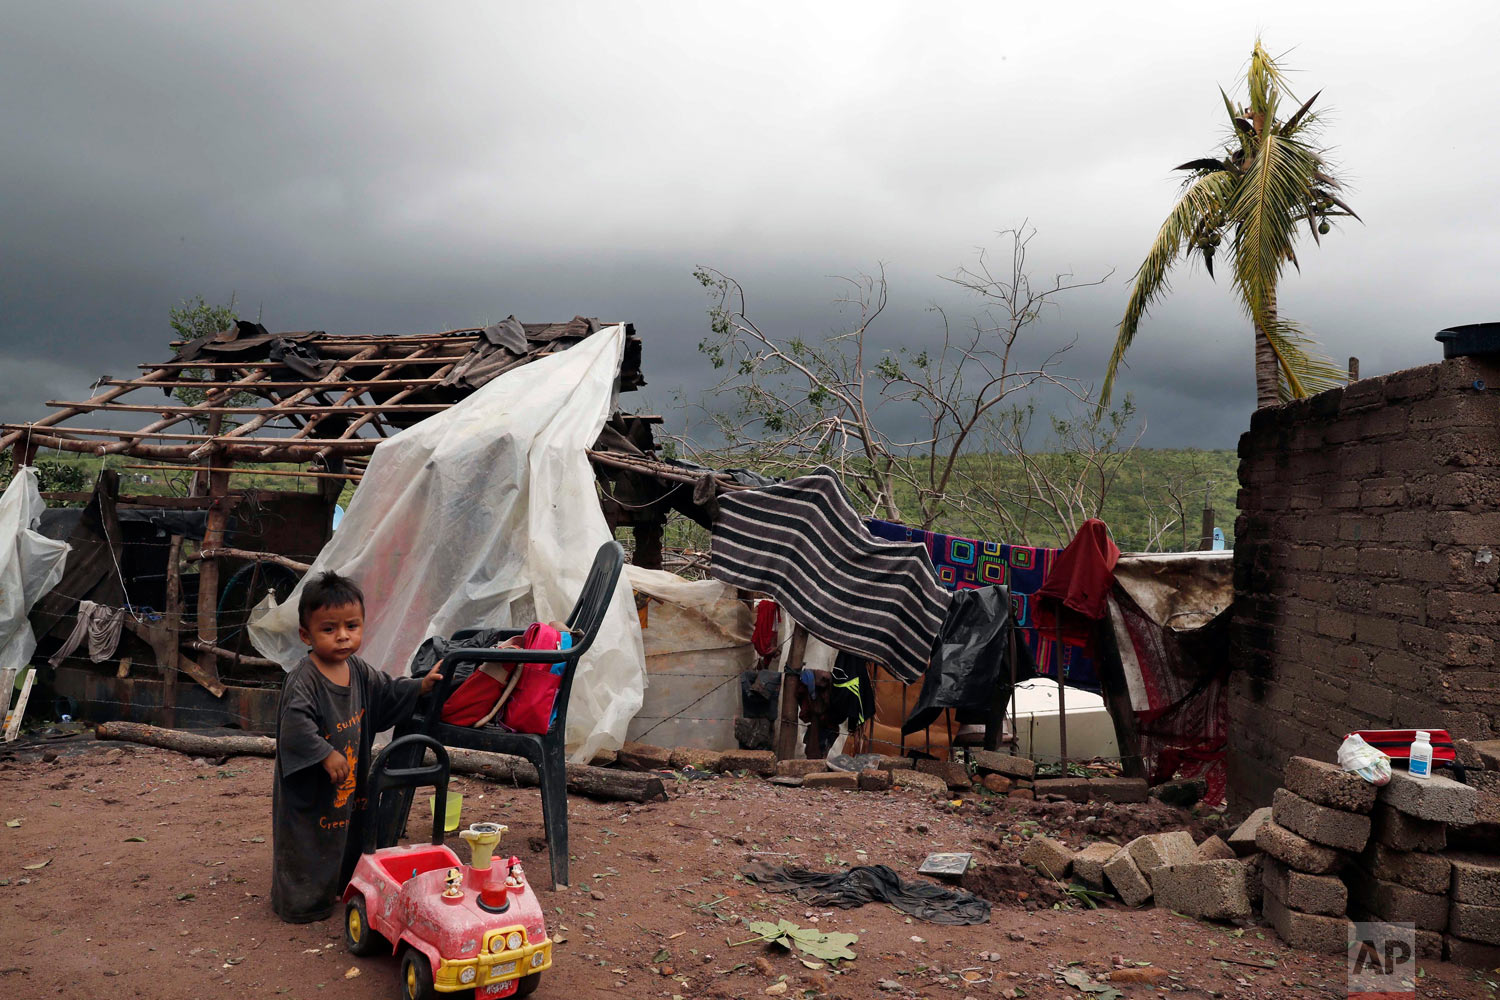 A child stands near his home damaged by Hurricane Willa in Escuinapa, Mexico, Oct. 24, 2018. There were no immediate reports of deaths or missing people, but Willa's strong winds damaged a hospital, knocked out power, toppled wood-shack homes and ripped metal roofing off other houses in the Sinaloa state municipality of Escuinapa when it came ashore. (AP Photo/Marco Ugarte)